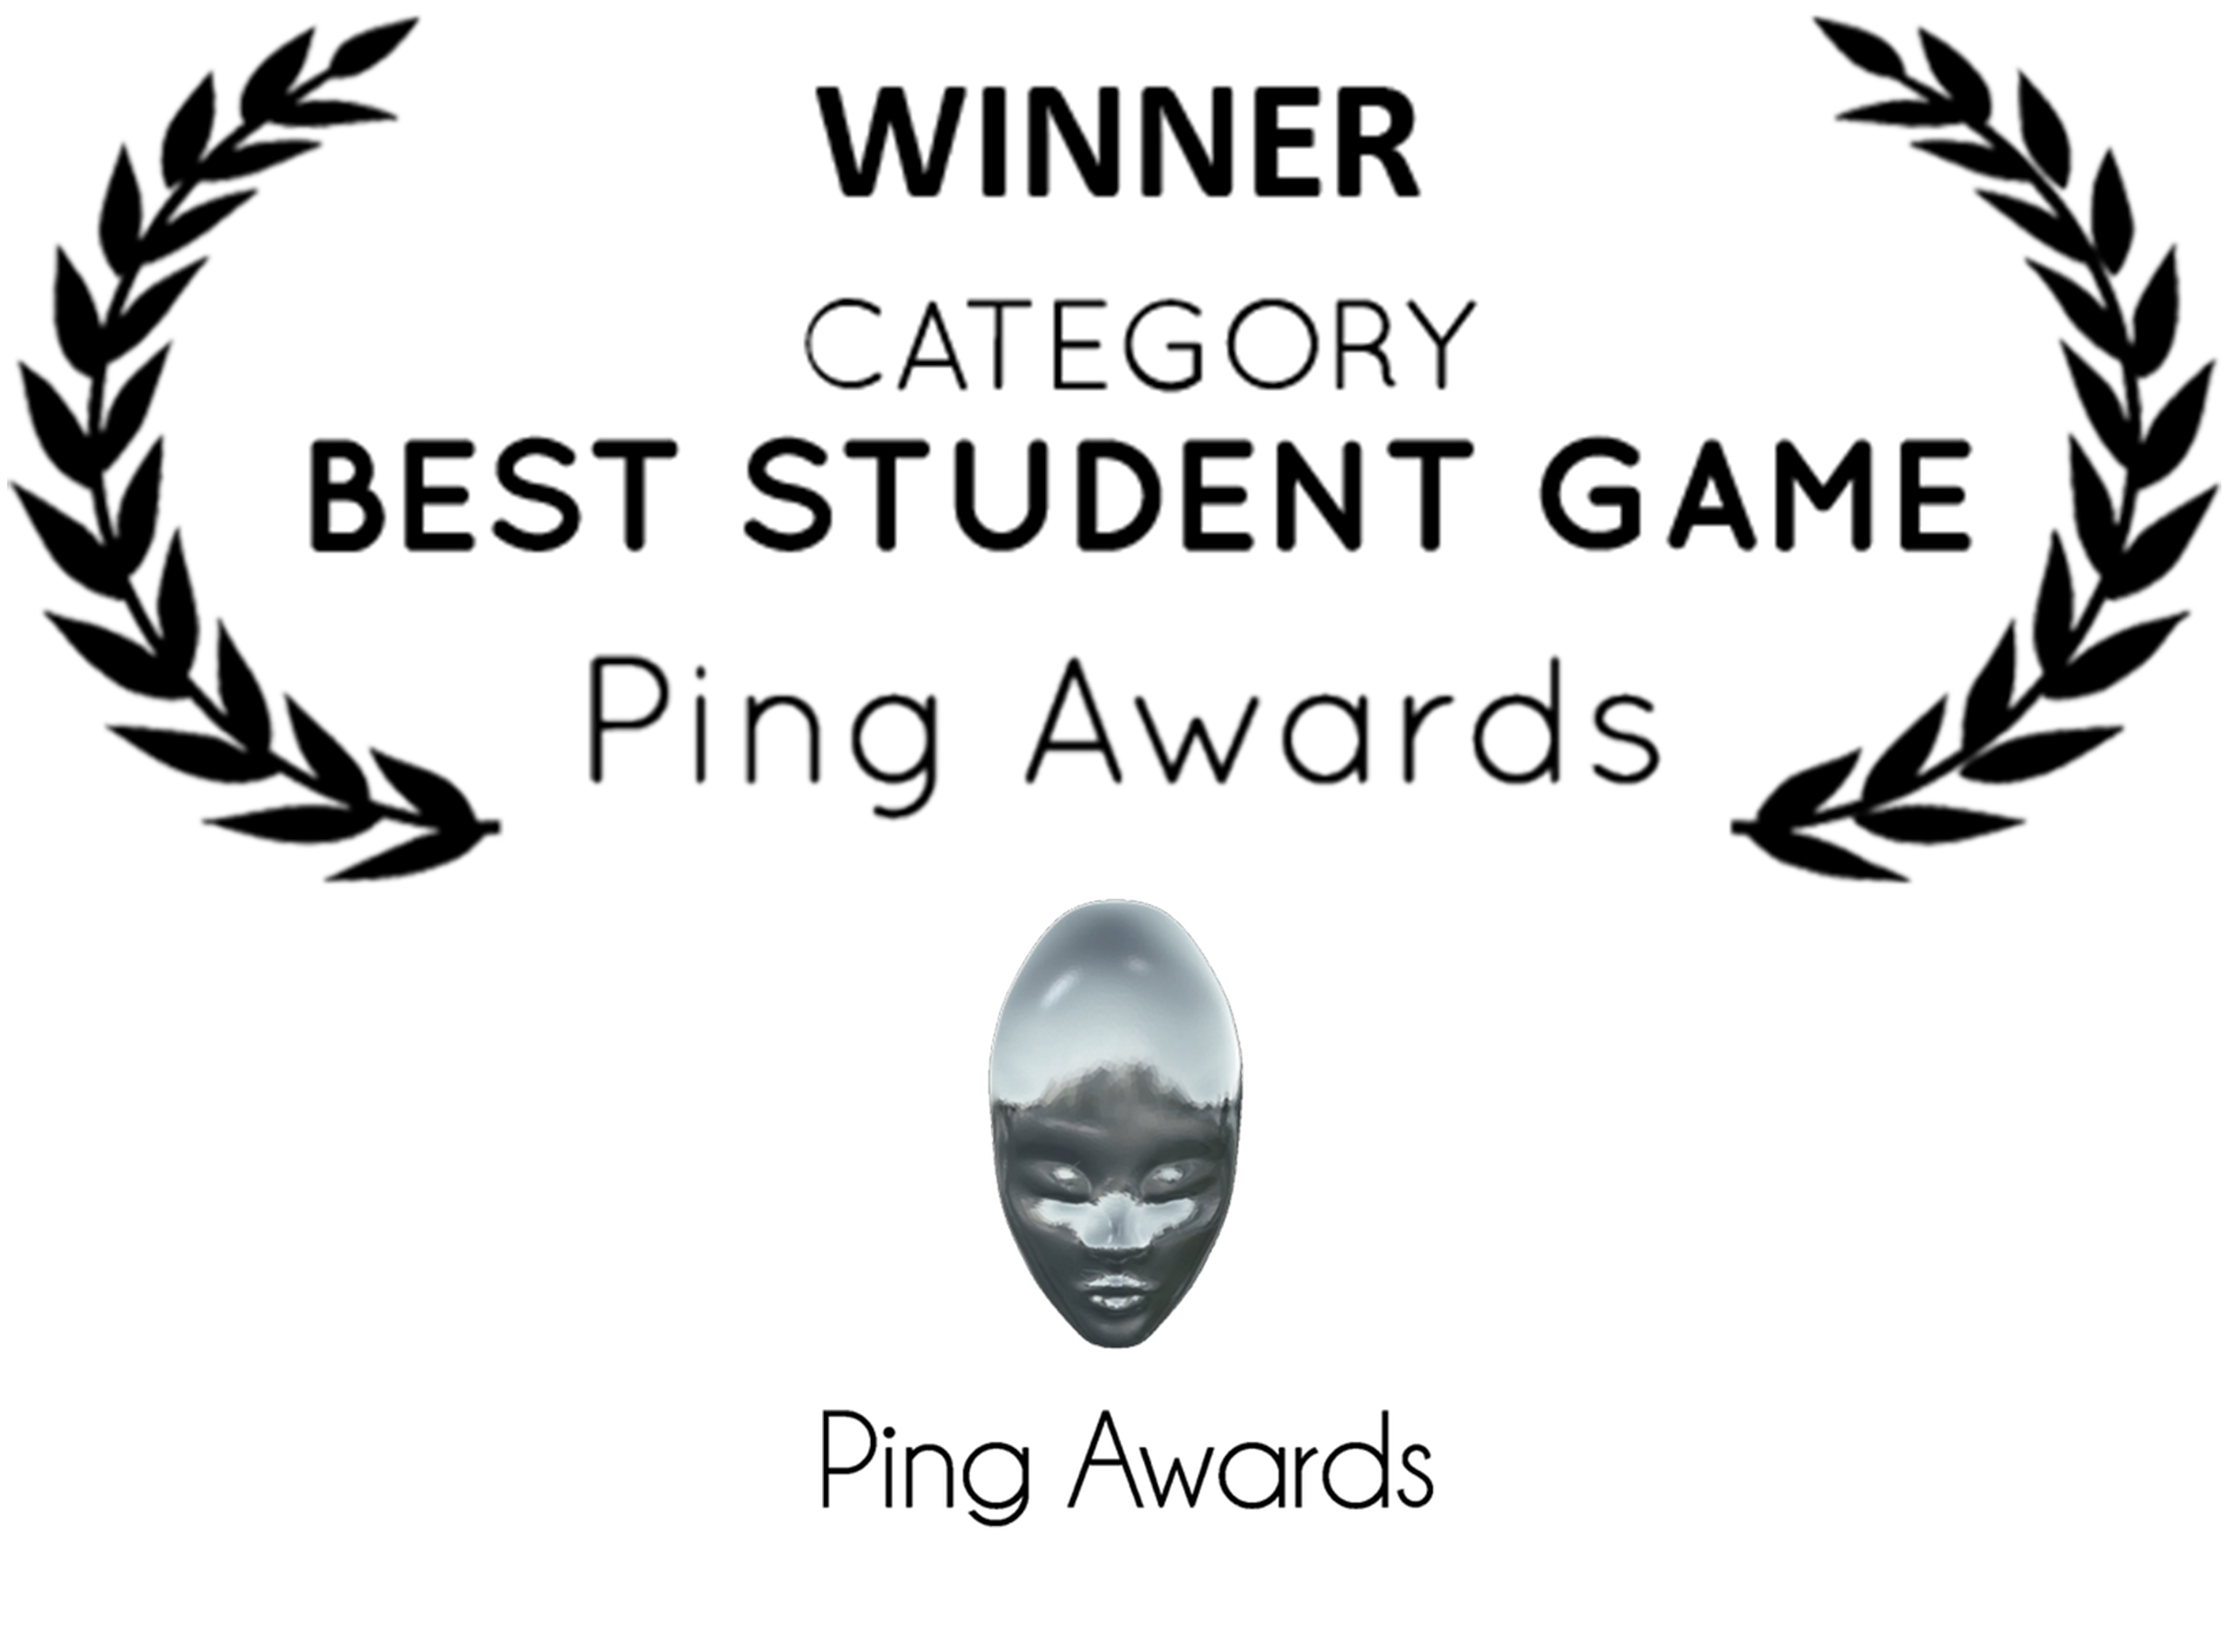 Ping Awards 2018 - Winner